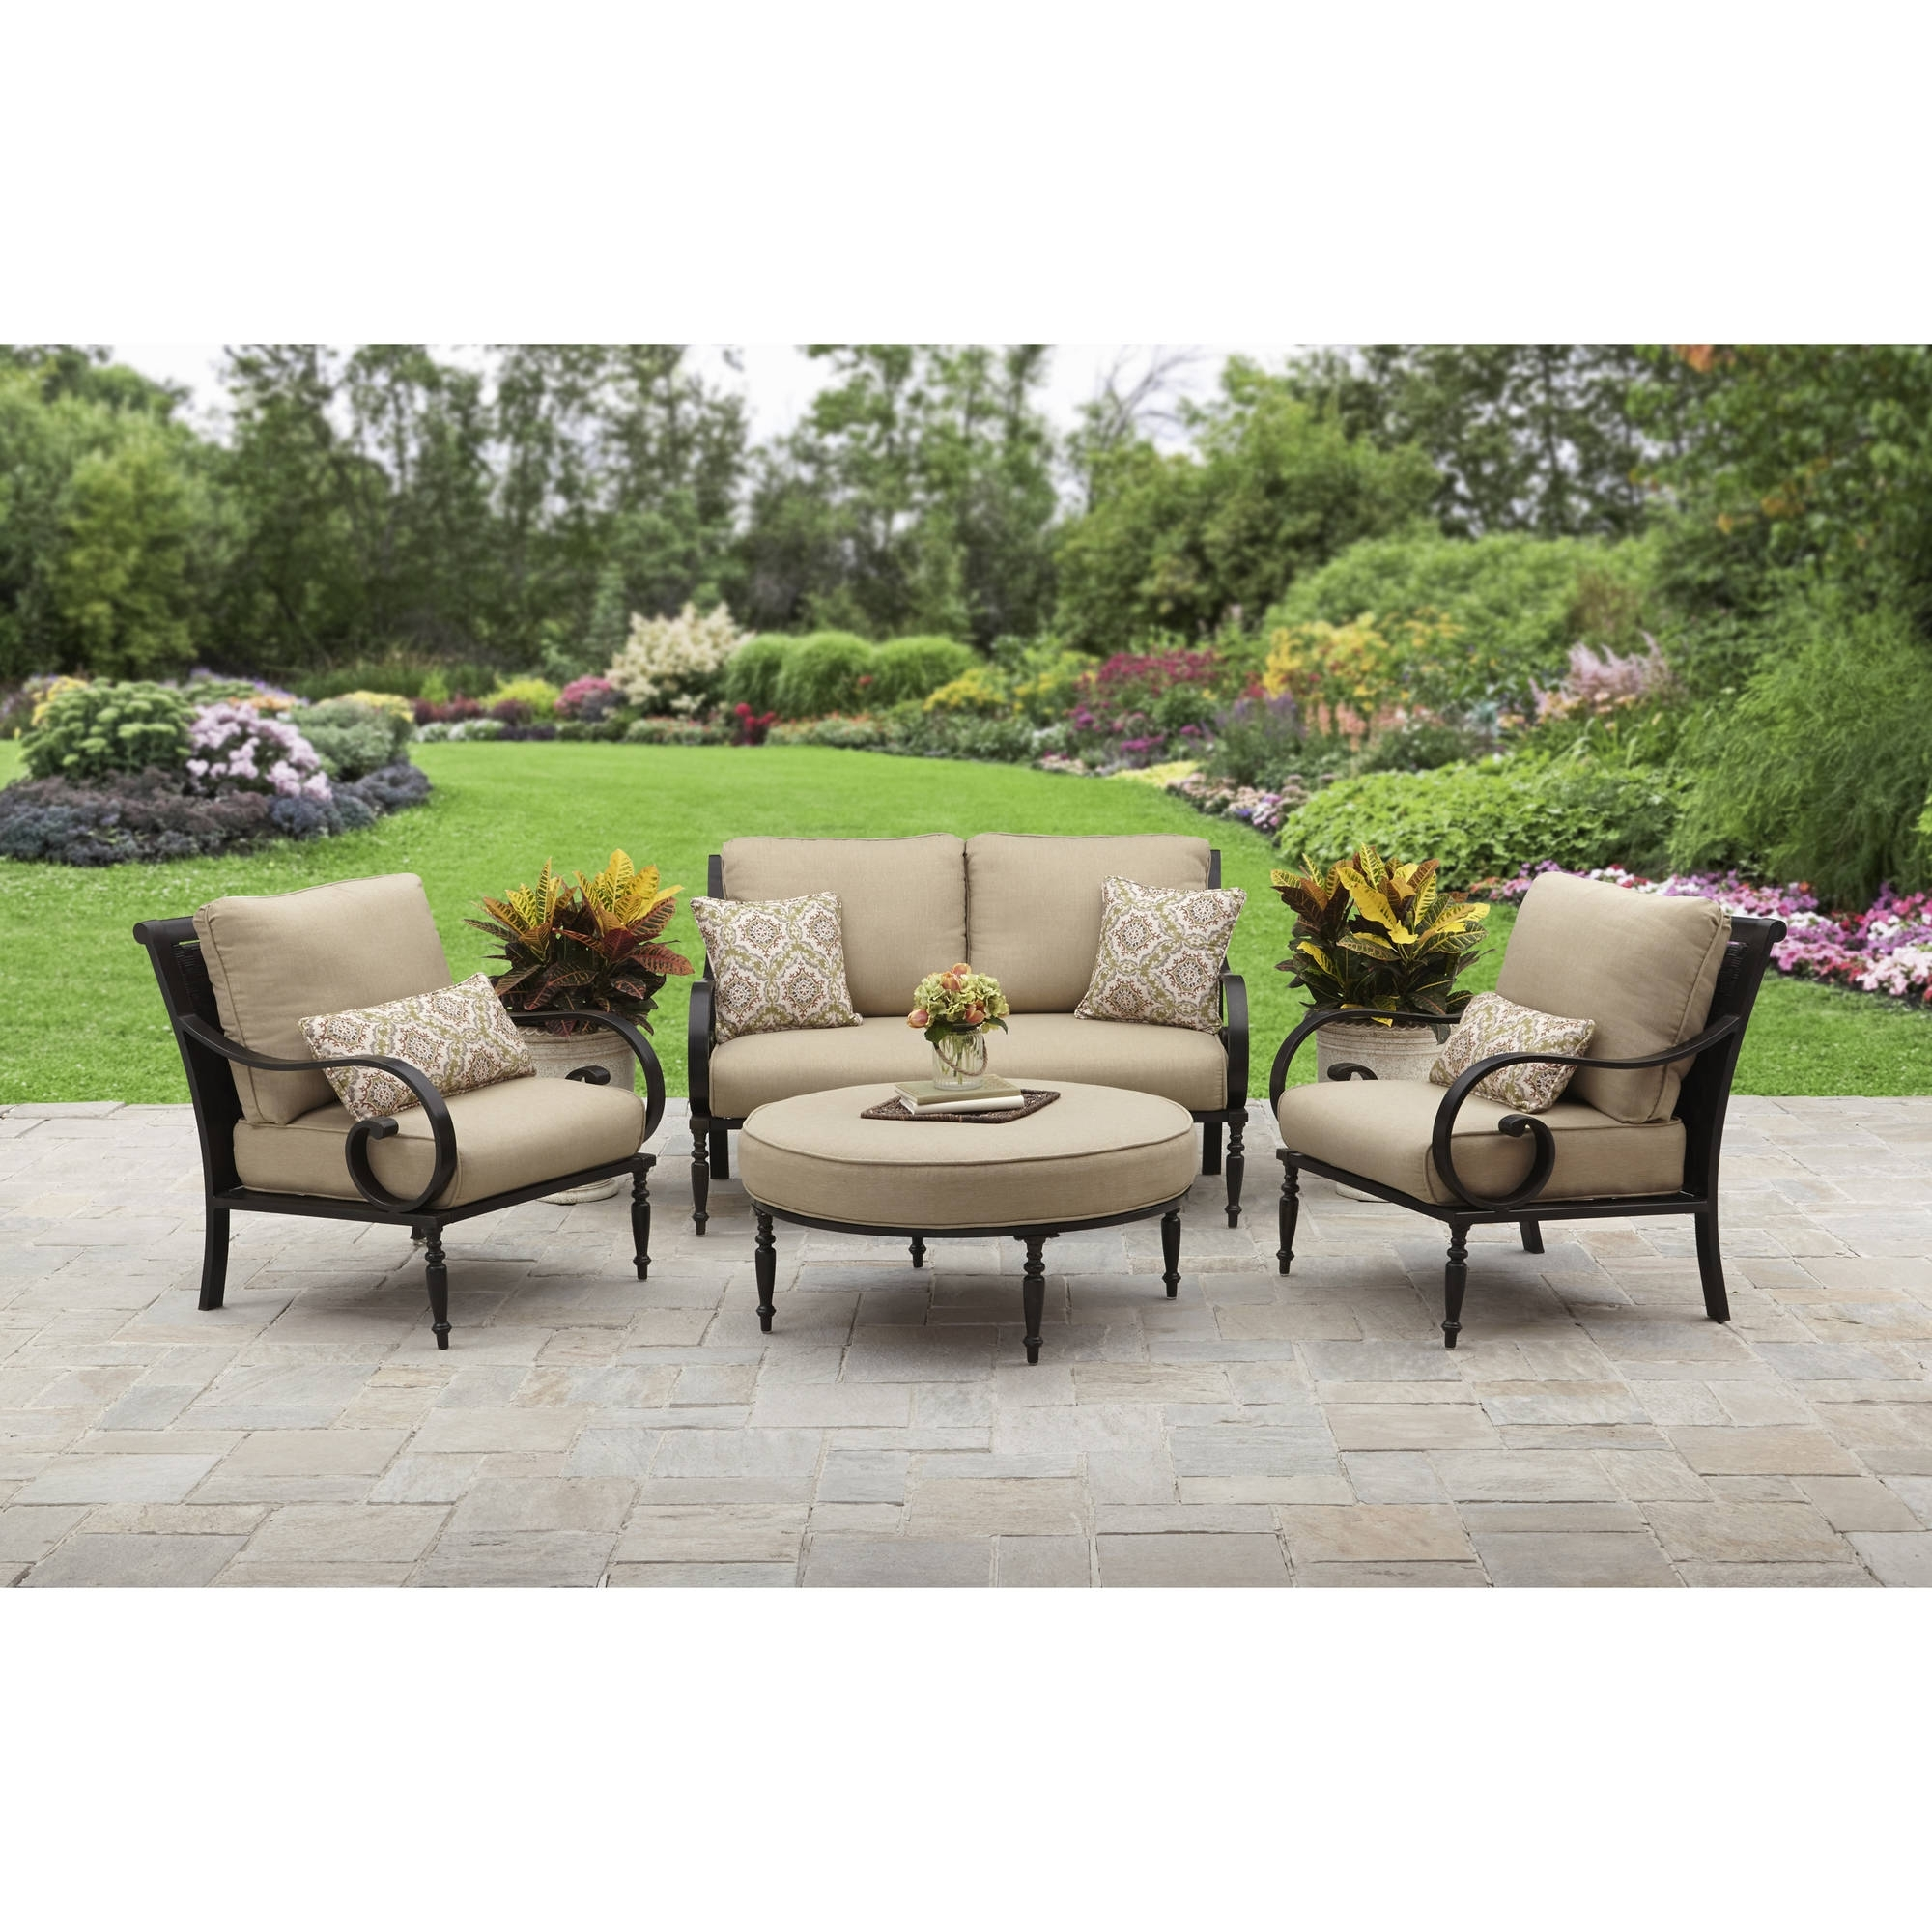 Well Liked Better Homes And Gardens Englewood Heights Ii Aluminum 4 Piece In Patio Conversation Sets Without Cushions (View 11 of 15)